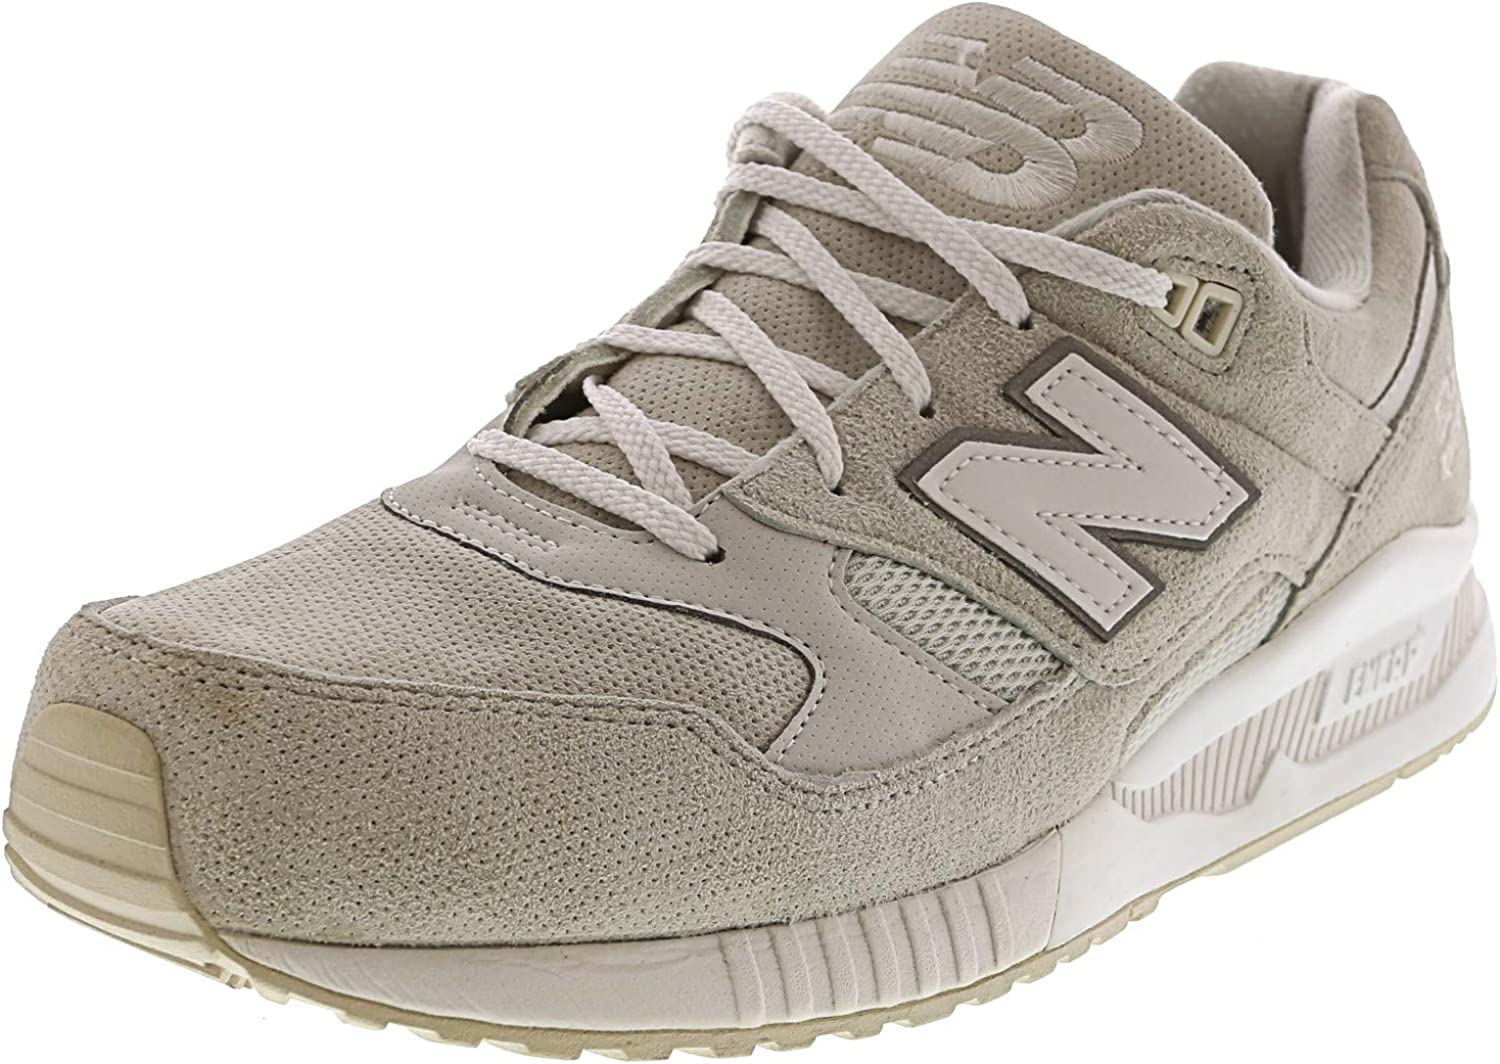 New Balance Men's M530 Ankle-High Fabric Running Shoe Aw 12 M US